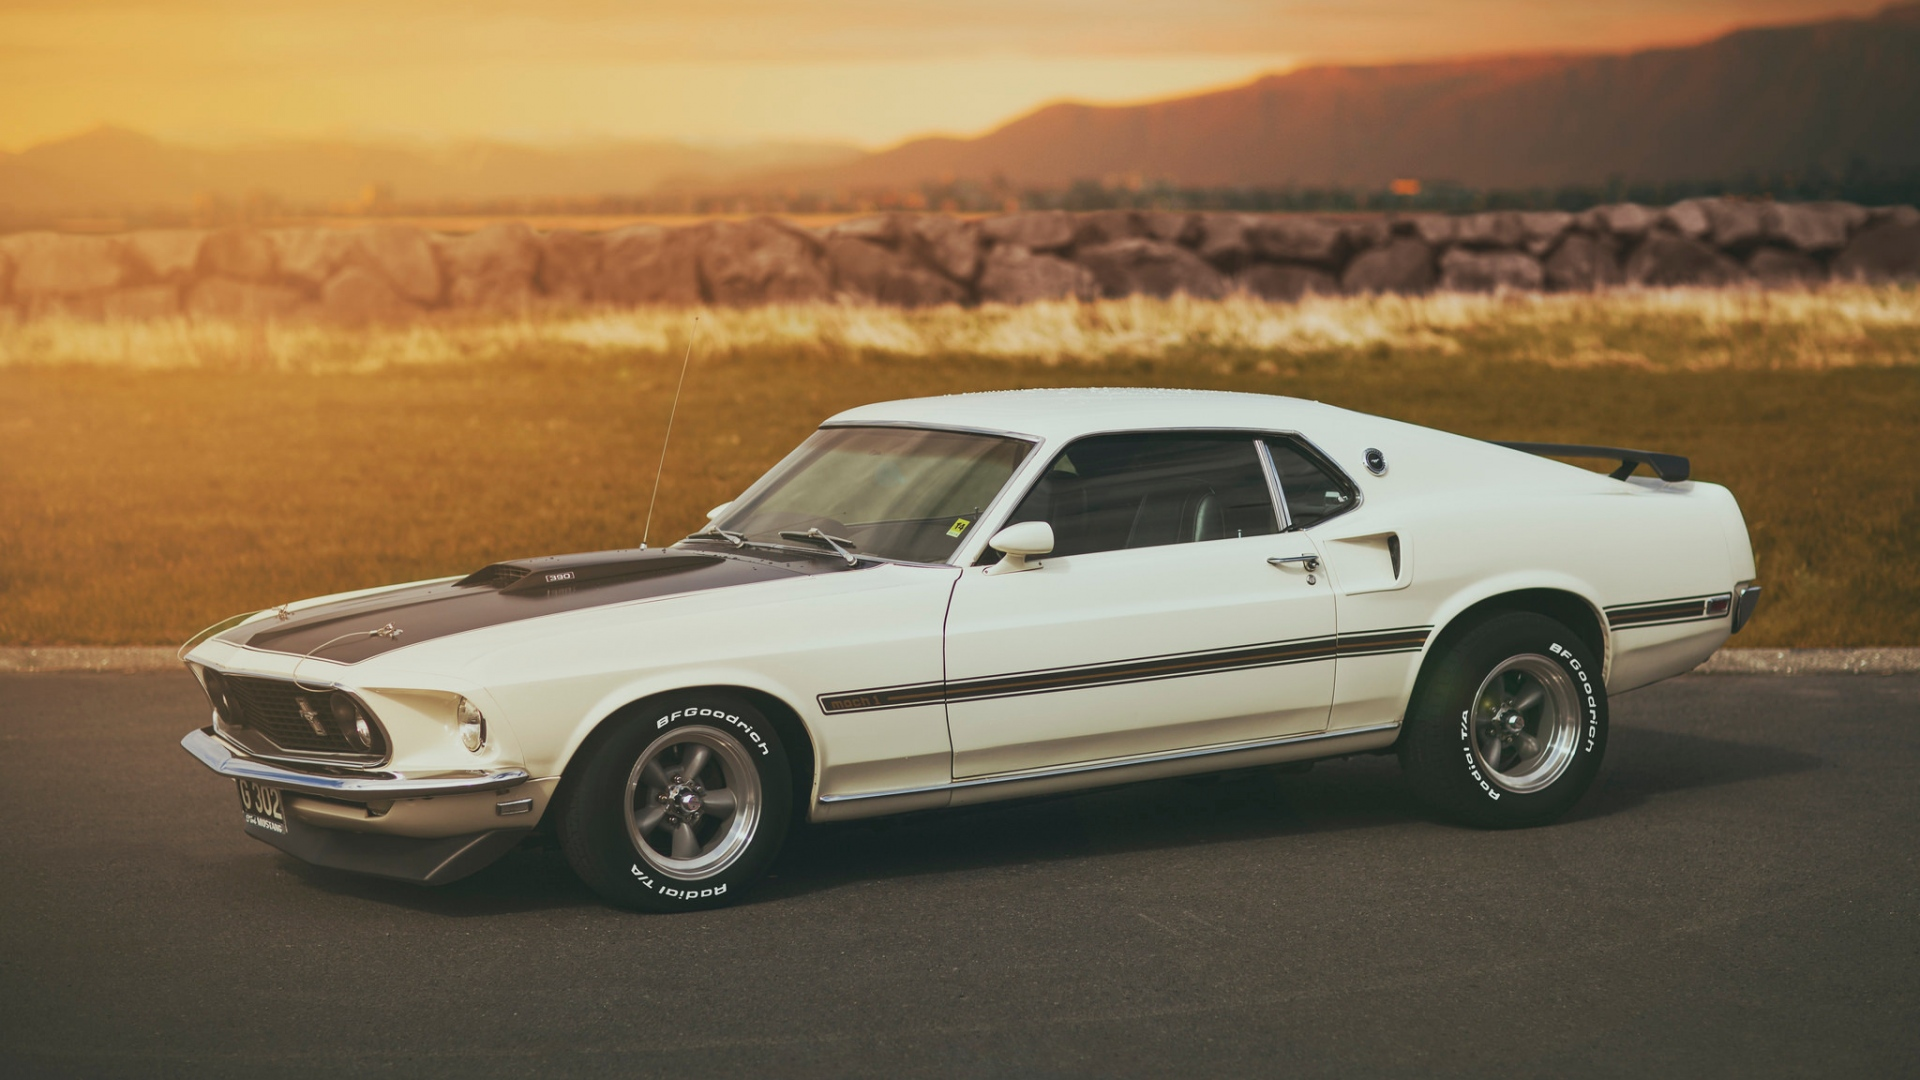 Ford Mustang Mach 1 Hd Wallpaper Background Image 1920x1080